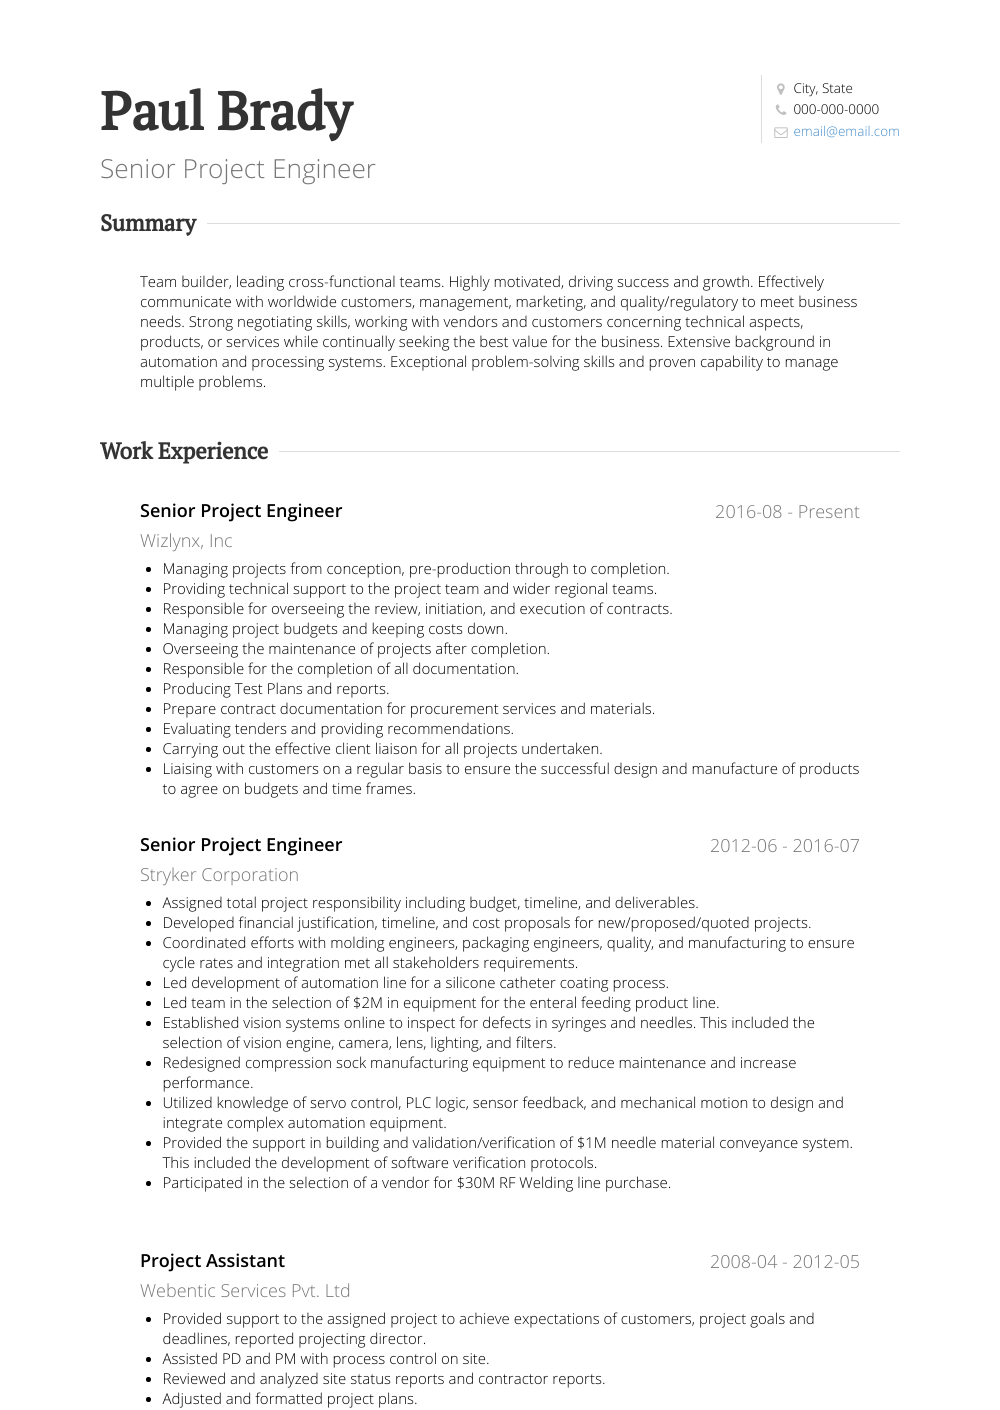 Senior Project Engineer Resume Sample and Template